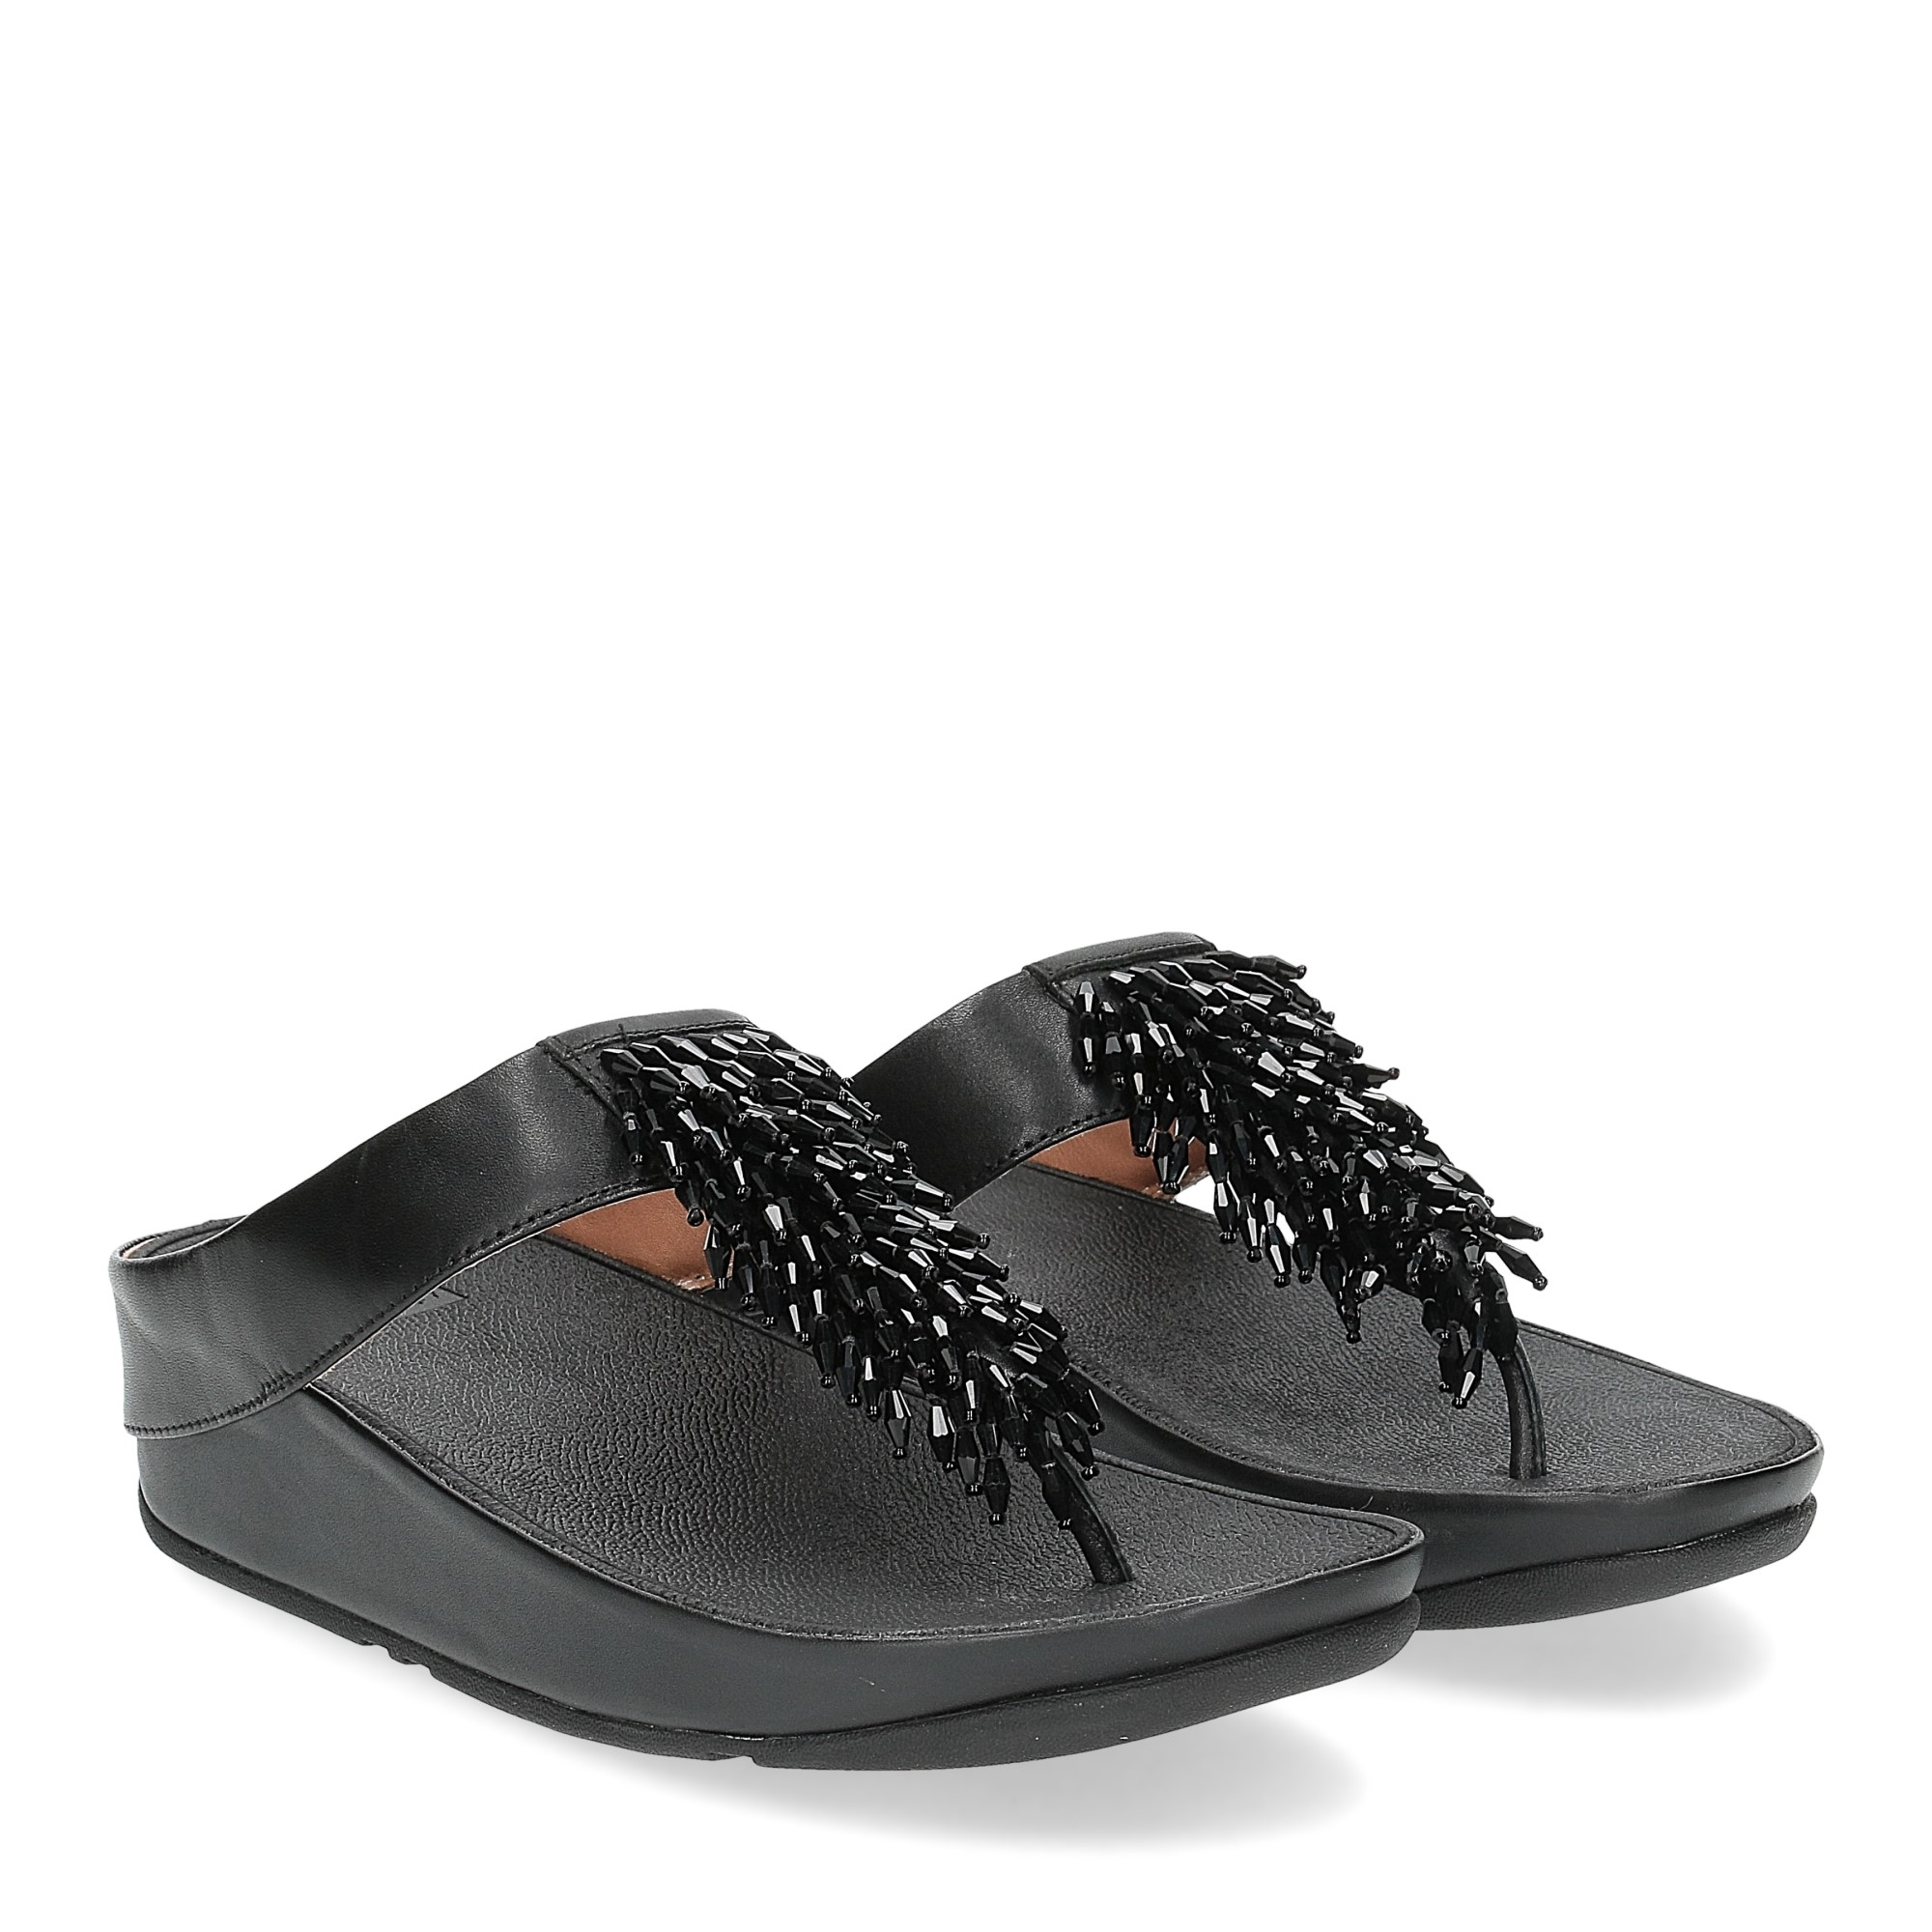 Fitflop Rumba toe thong sandal black